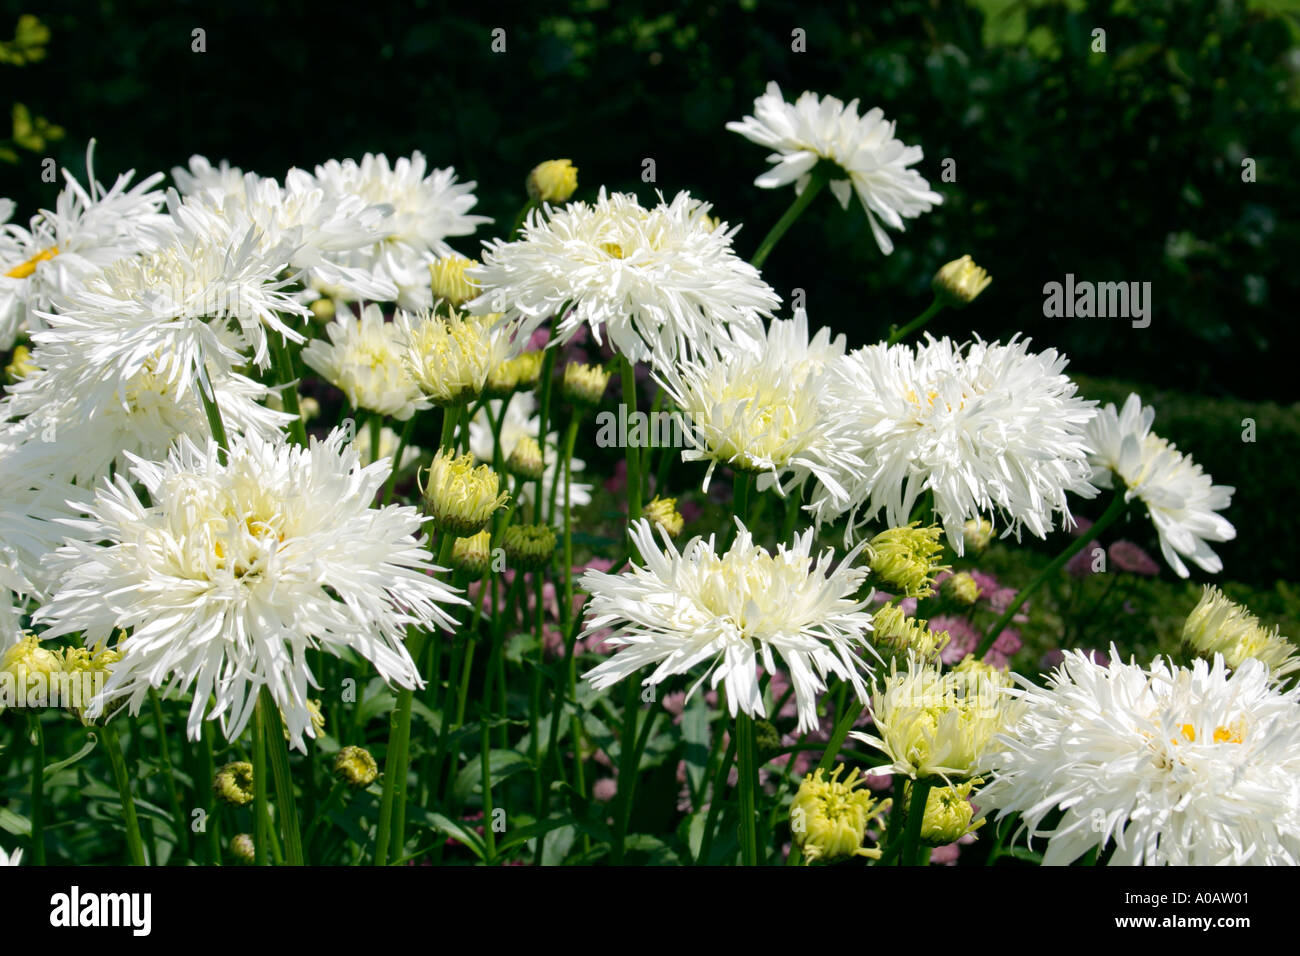 White flowers of garden plant leucanthemum x superbum shaggy common white flowers of garden plant leucanthemum x superbum shaggy common name shasta daisy mightylinksfo